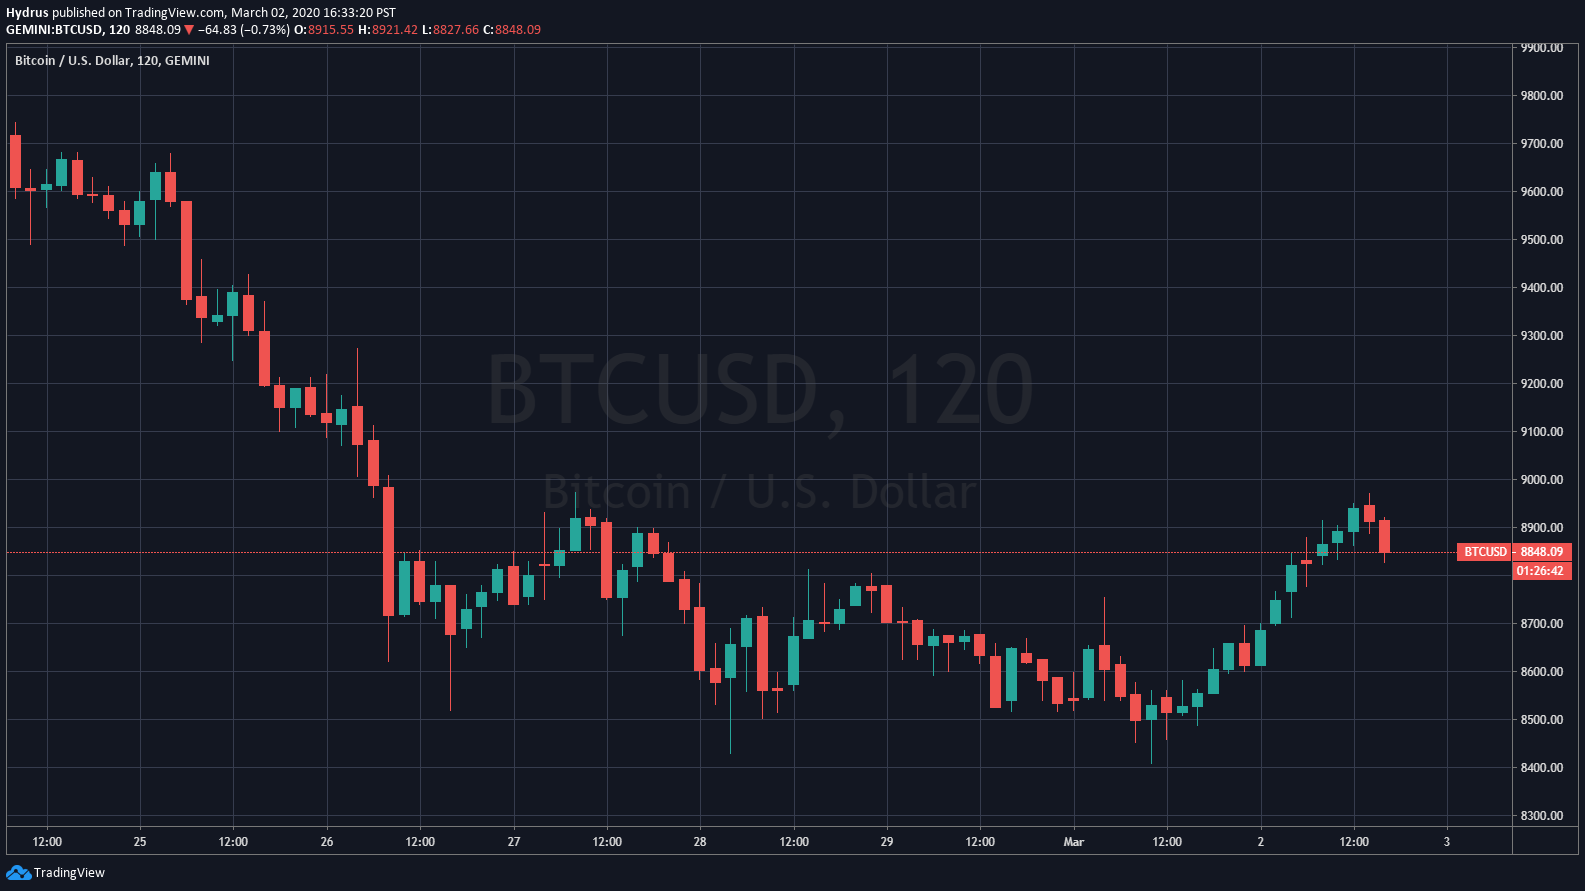 Bitcoin Surges to $8,900: Does The Rally Have Room to the Upside? 15